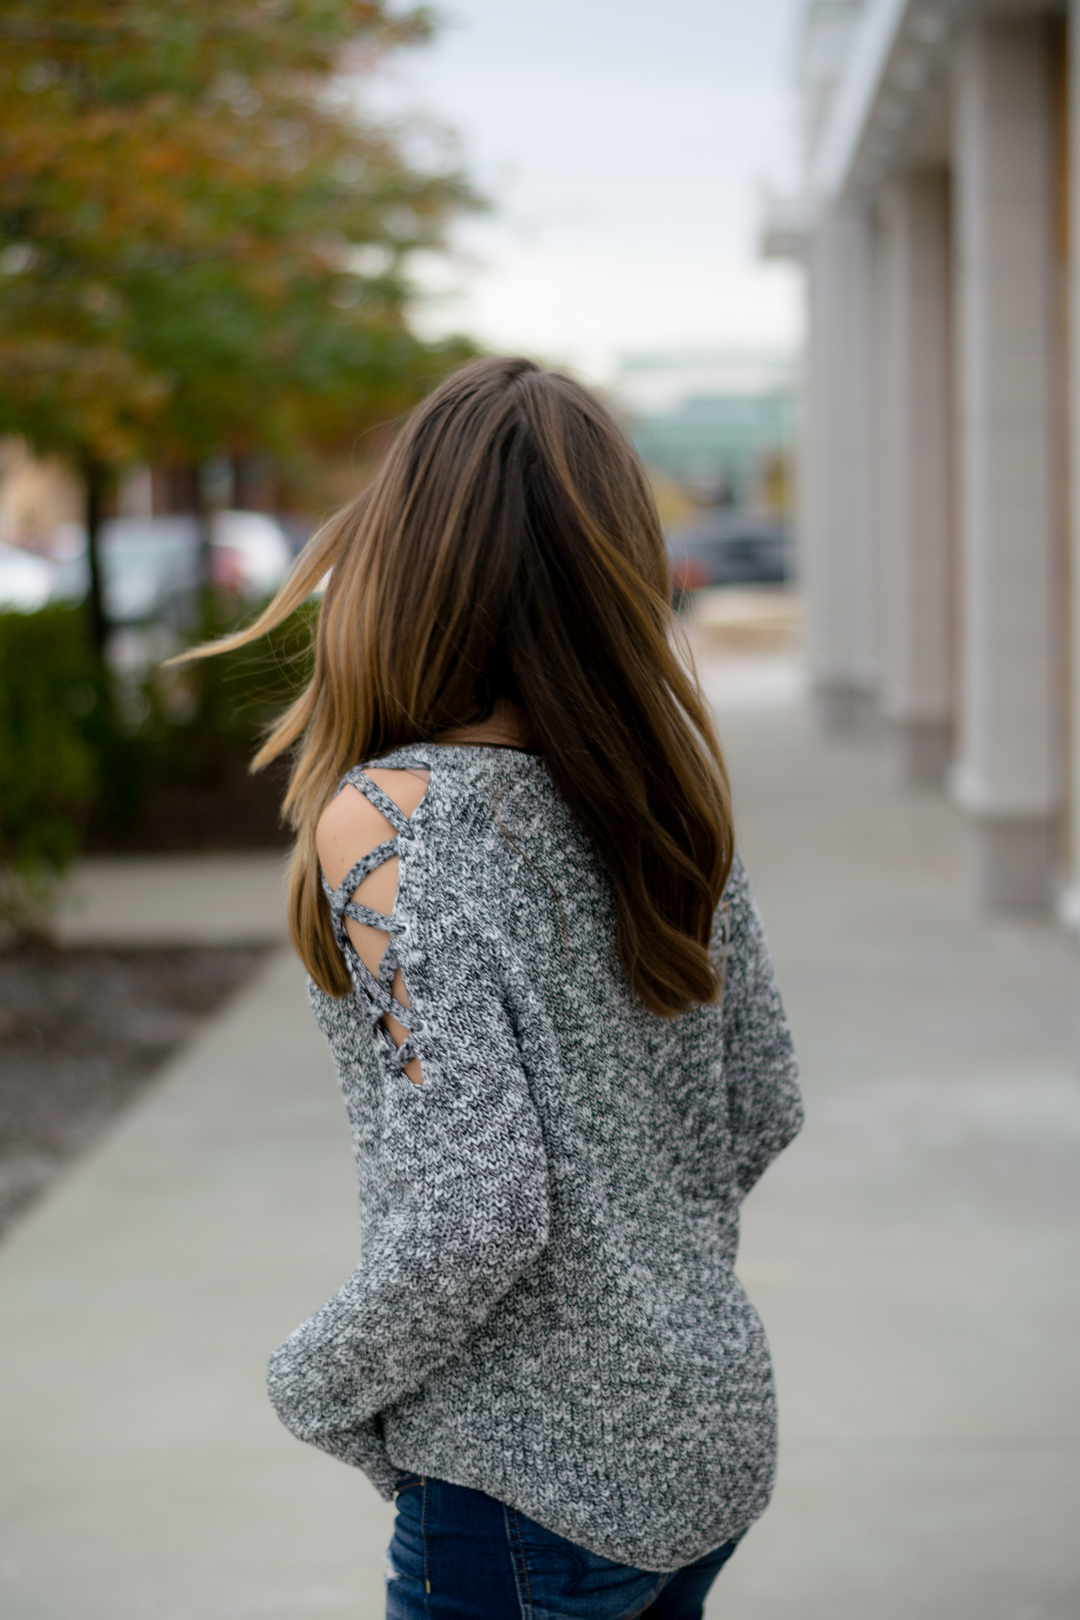 express lace up cold shoulder sweater, gray sweater outfit, peep toe booties, open toe booties, casual fall weekend outfit